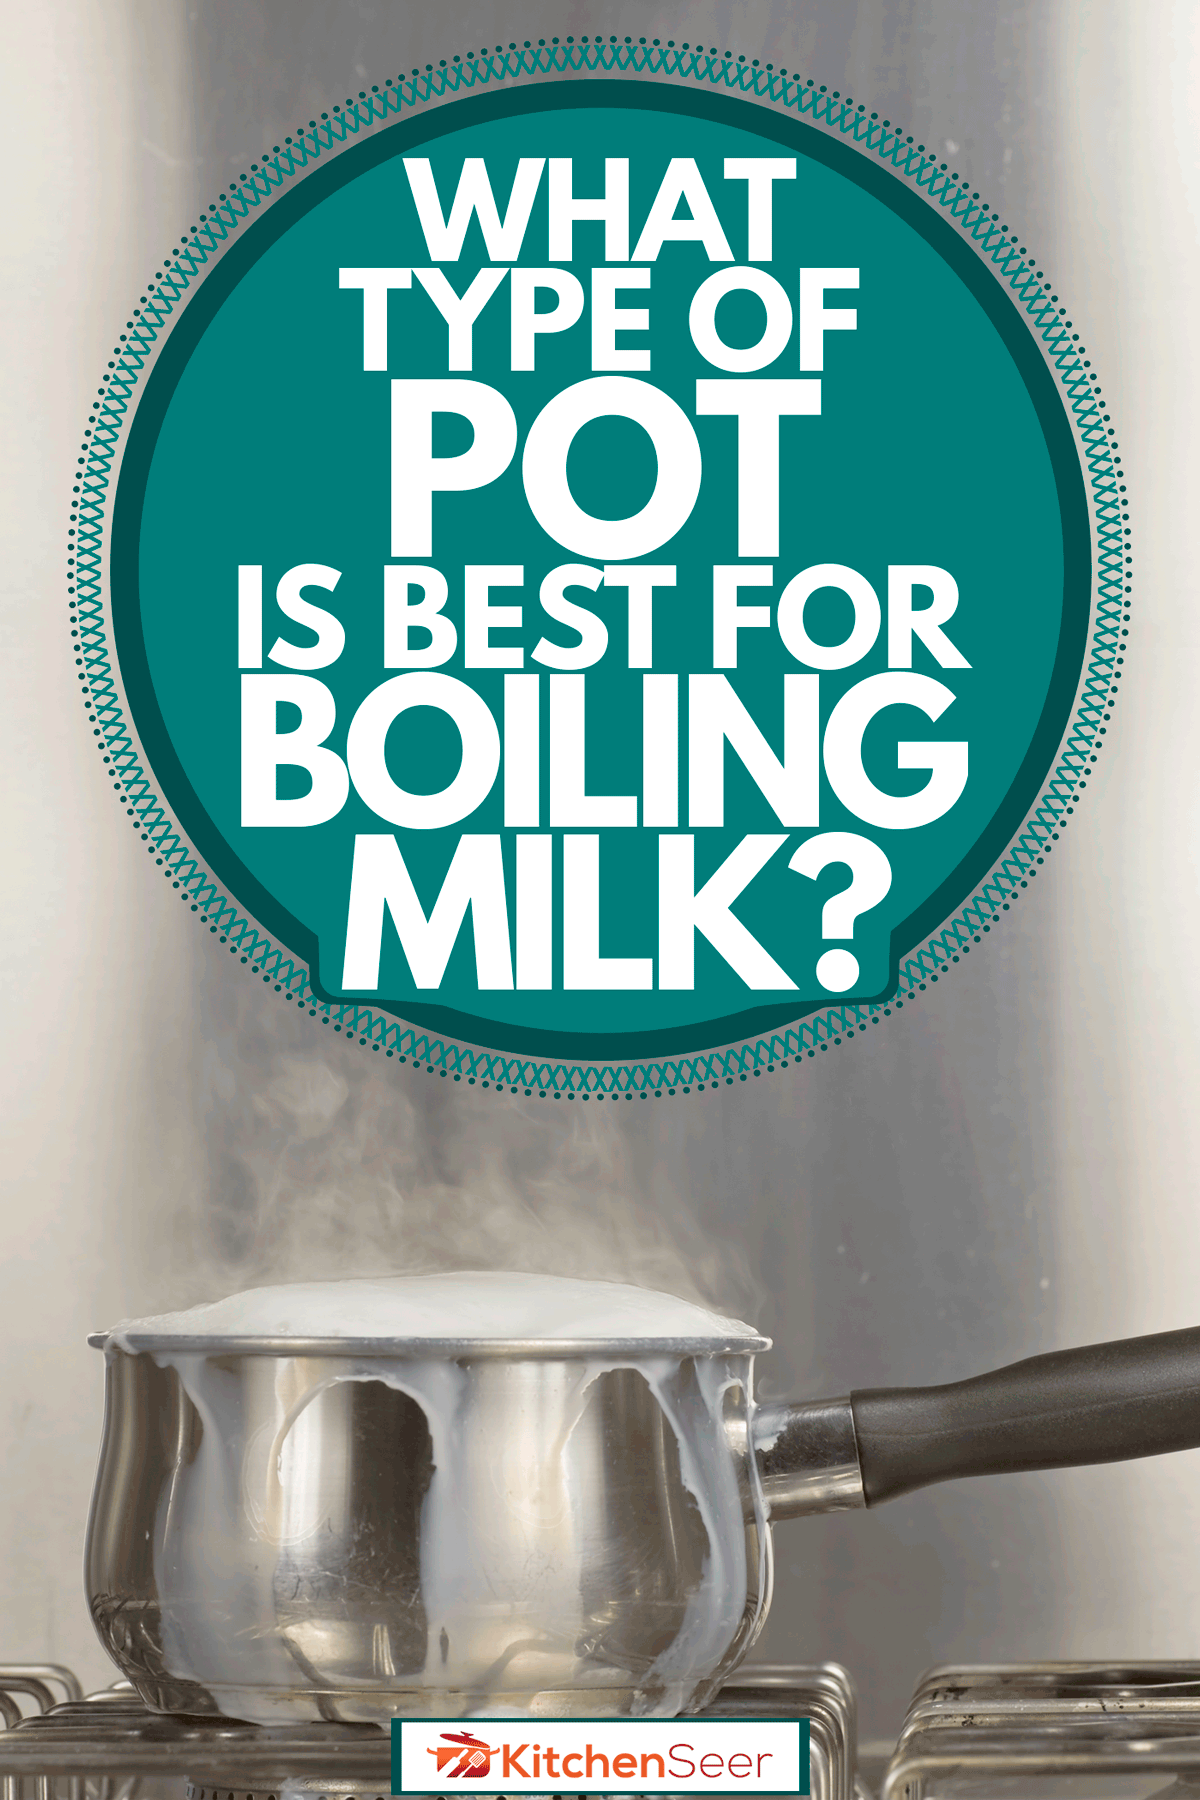 A boiling milk pot on a stove, What Type of Pot is Best for Boiling Milk?